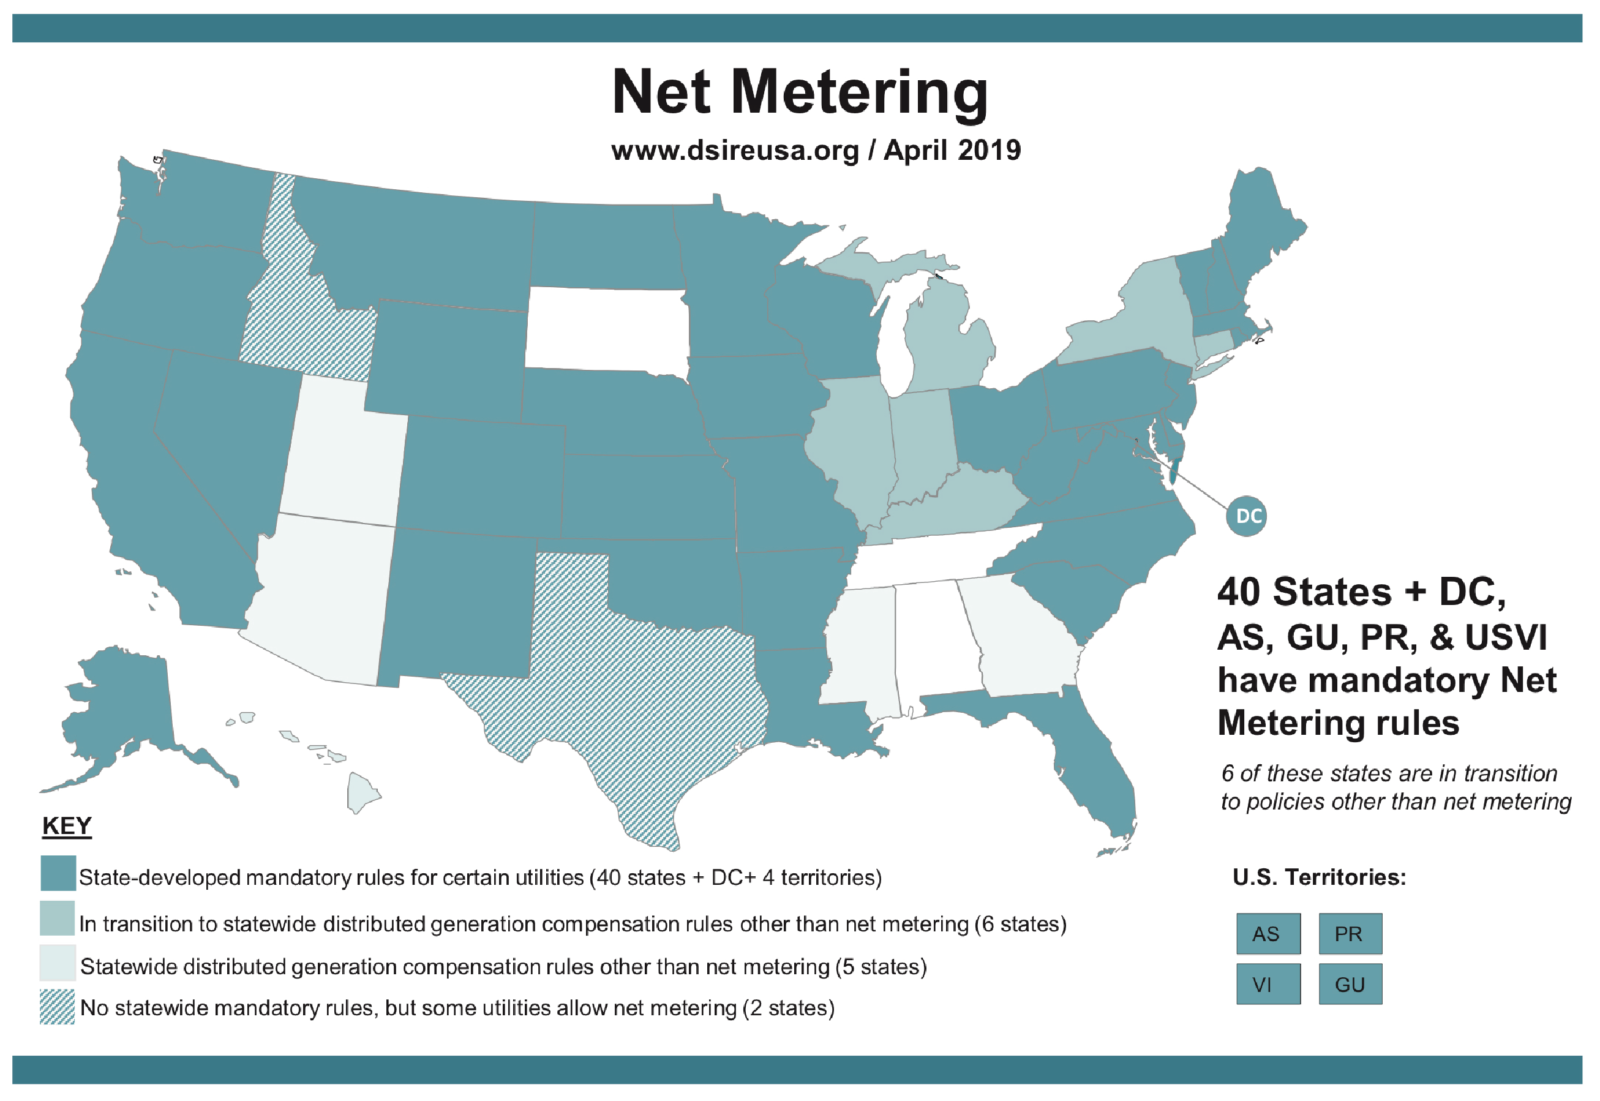 Net Metering, www.dsireusa.org / April 2019. 40 States + DC, AS, GU, PR, & USVI have mandatory Net Metering rules. 6 of these states are in transition to policies other than net metering.